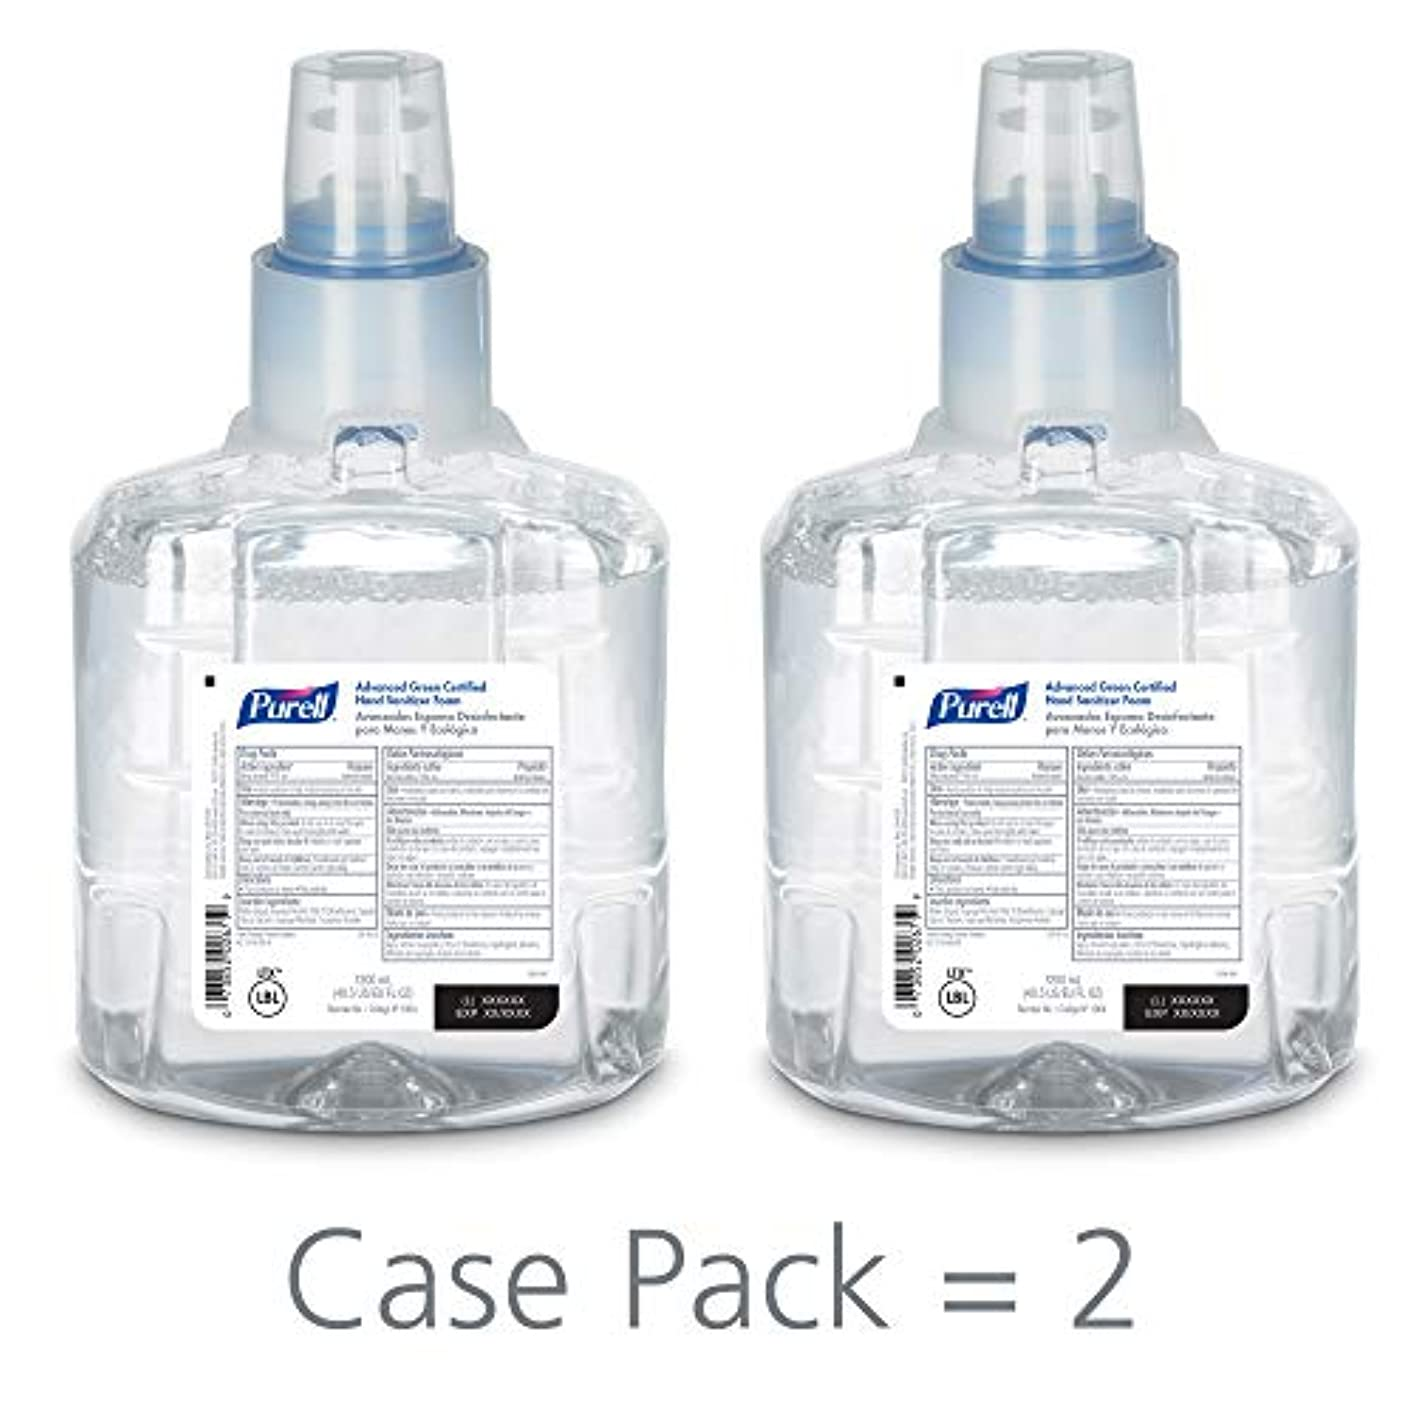 PURELL 1904-02 1200 mL Advanced Green Certified Instant Hand Sanitizer Foam, LTX-12 Refill (Pack of 2) by Purell